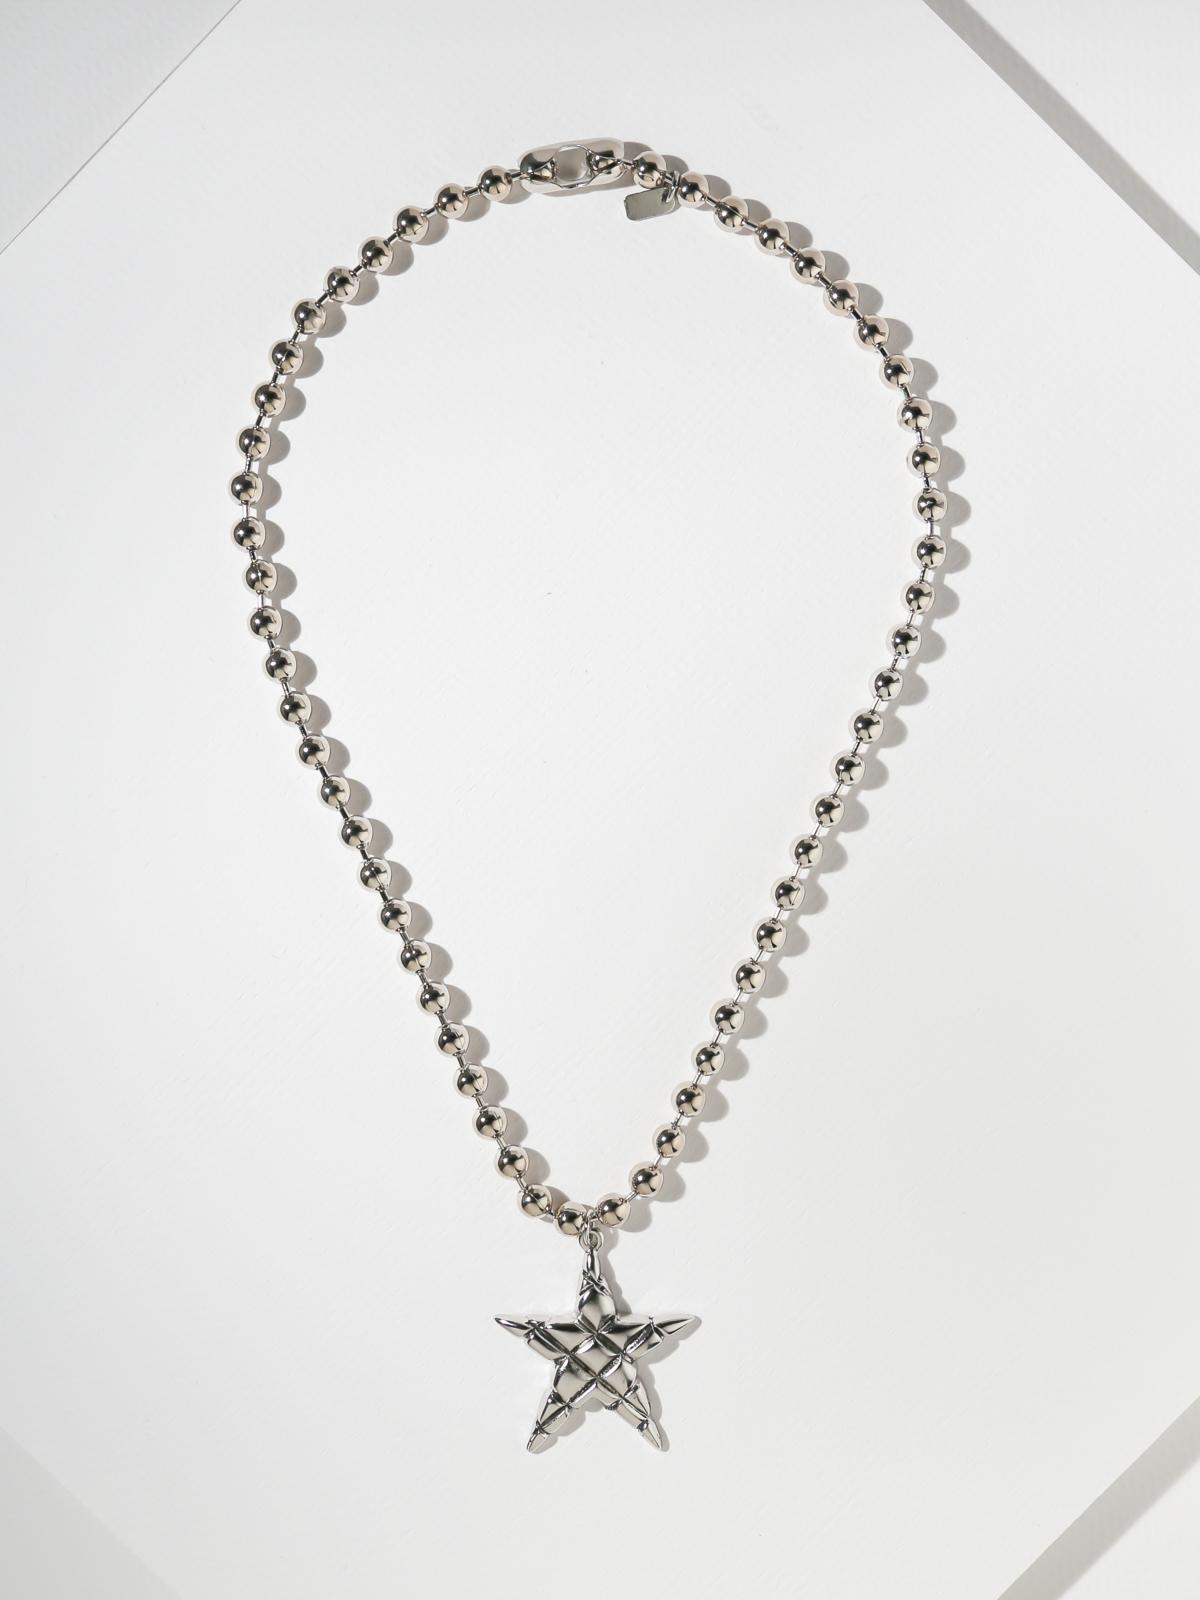 Sale Items SAMPLE: The Astrid Necklace - Silver Vanessa Mooney